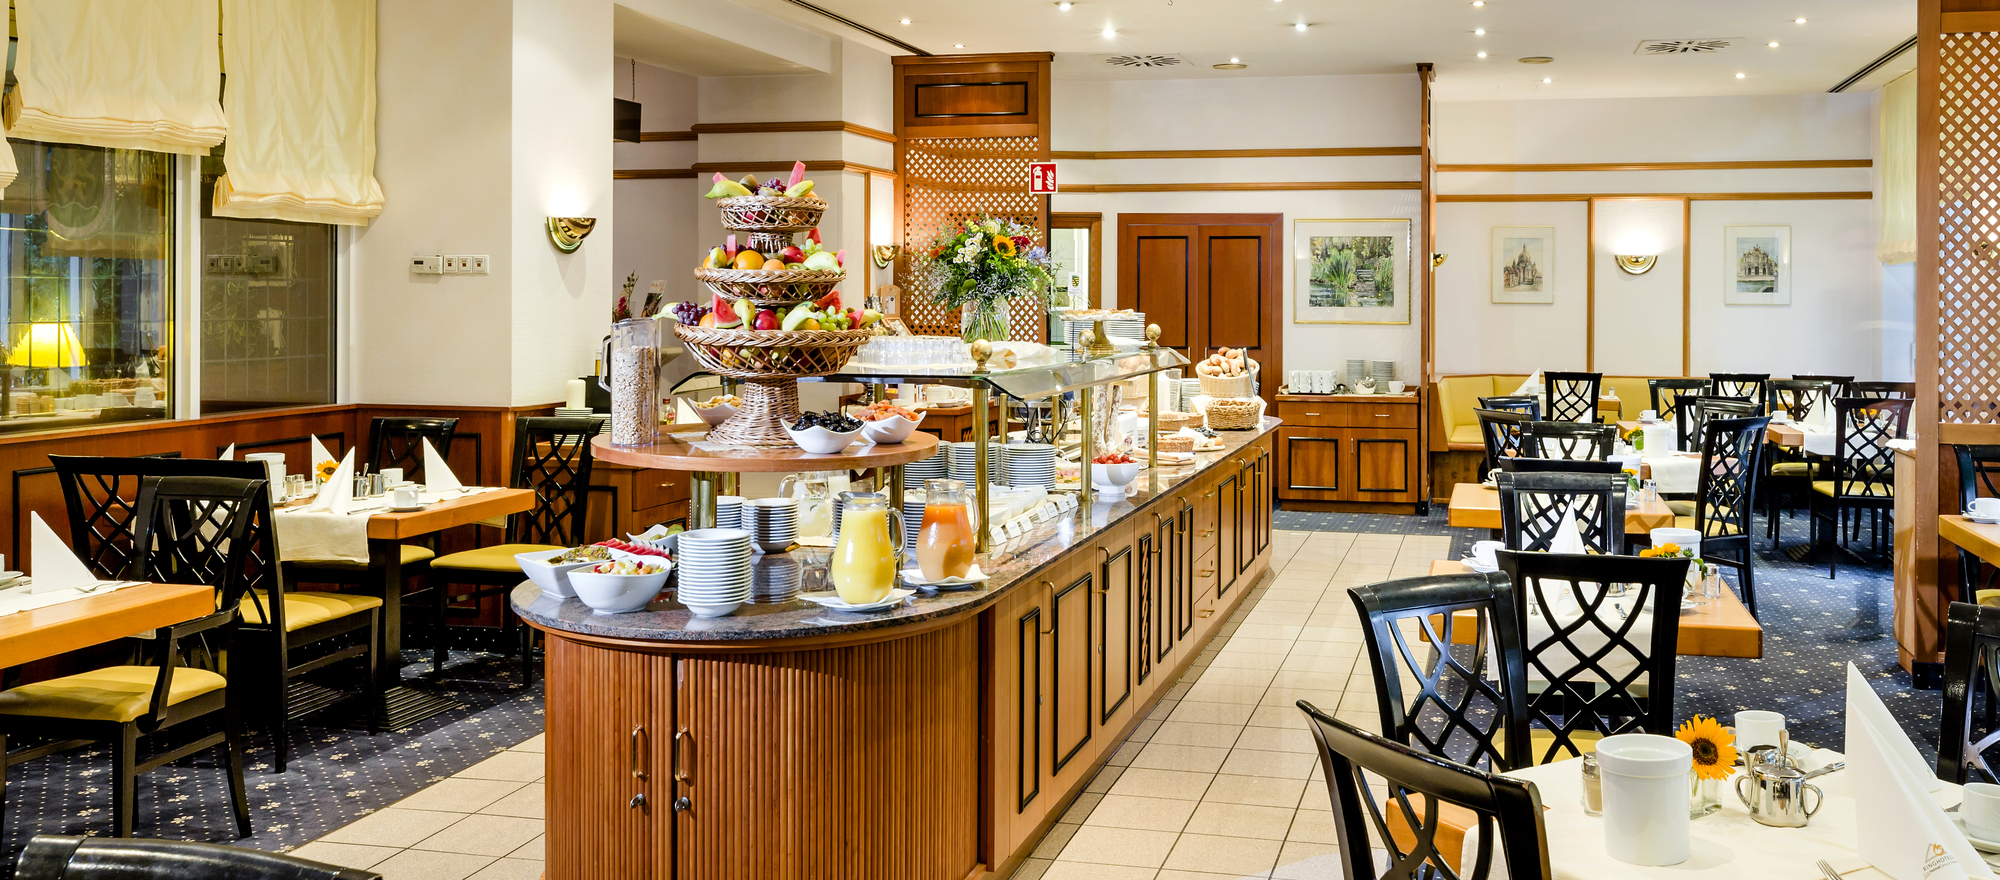 Breakfast at the restaurant  in the 4-star Ringhotel Residenz Alt Dresden in Dresden